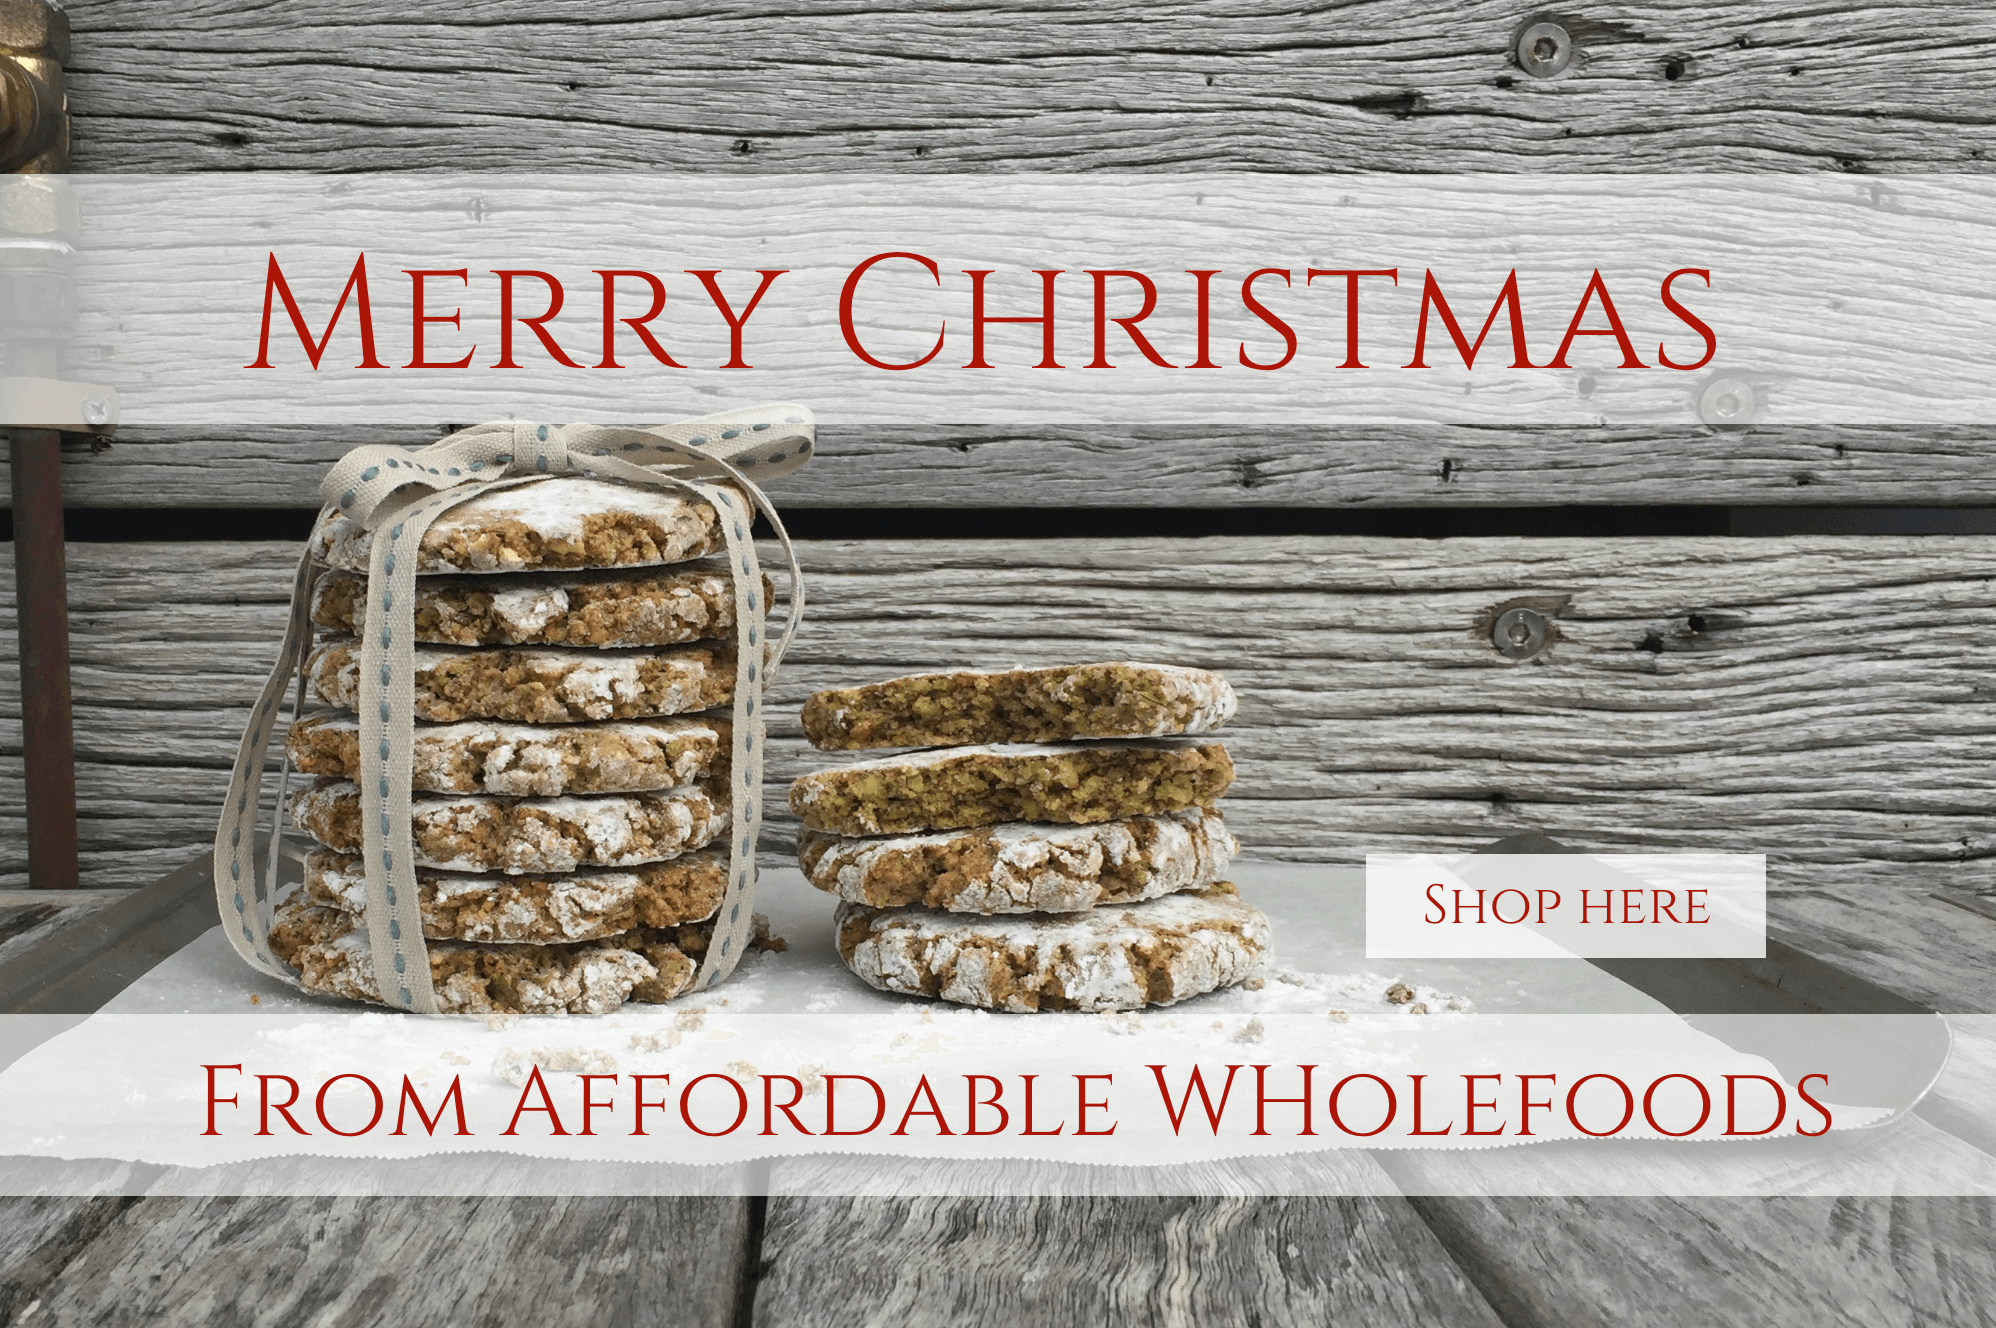 Merry Christmas from Affordable Wholefoods